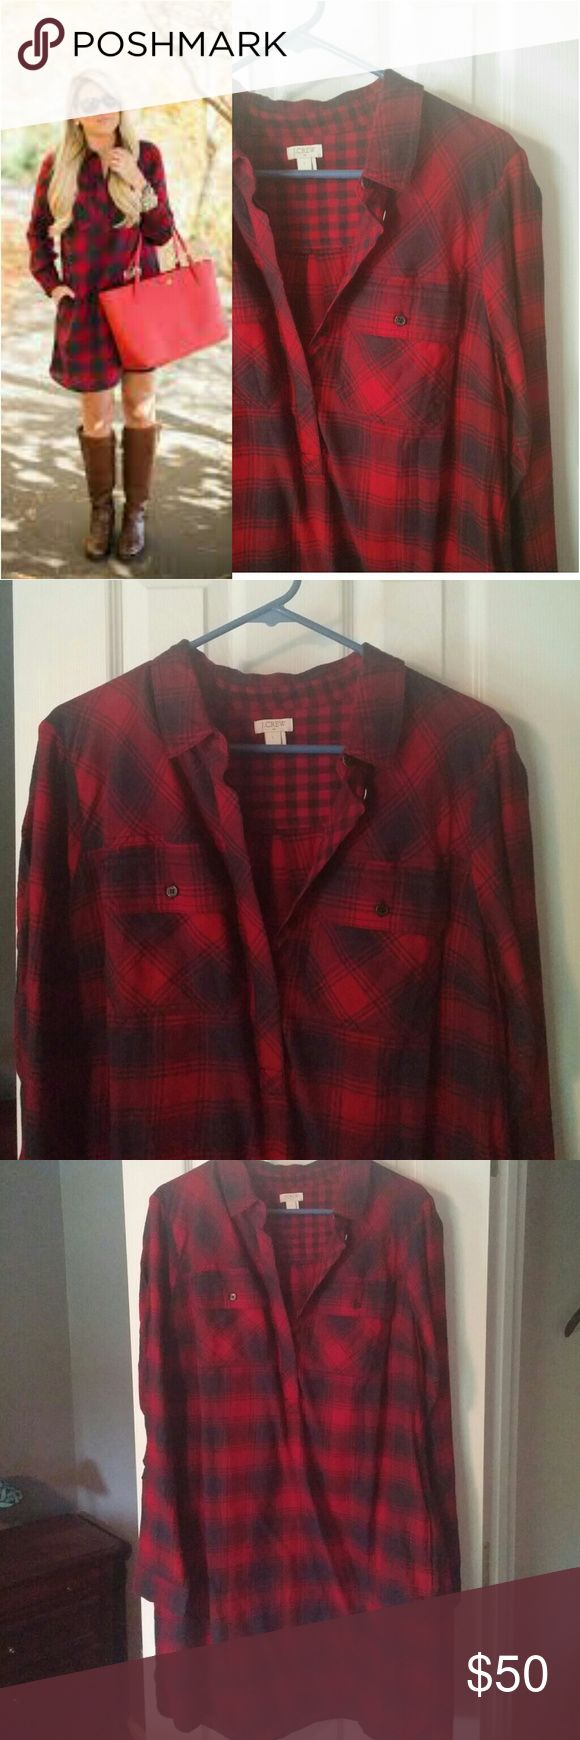 J. Crew Flannel Shirt Dress Brand new without tags! Never worn! Red and navy plaid flannel. Button front halfway, pullover. Two pockets on front. Perfect condition! *30% off bundles* J. Crew Dresses